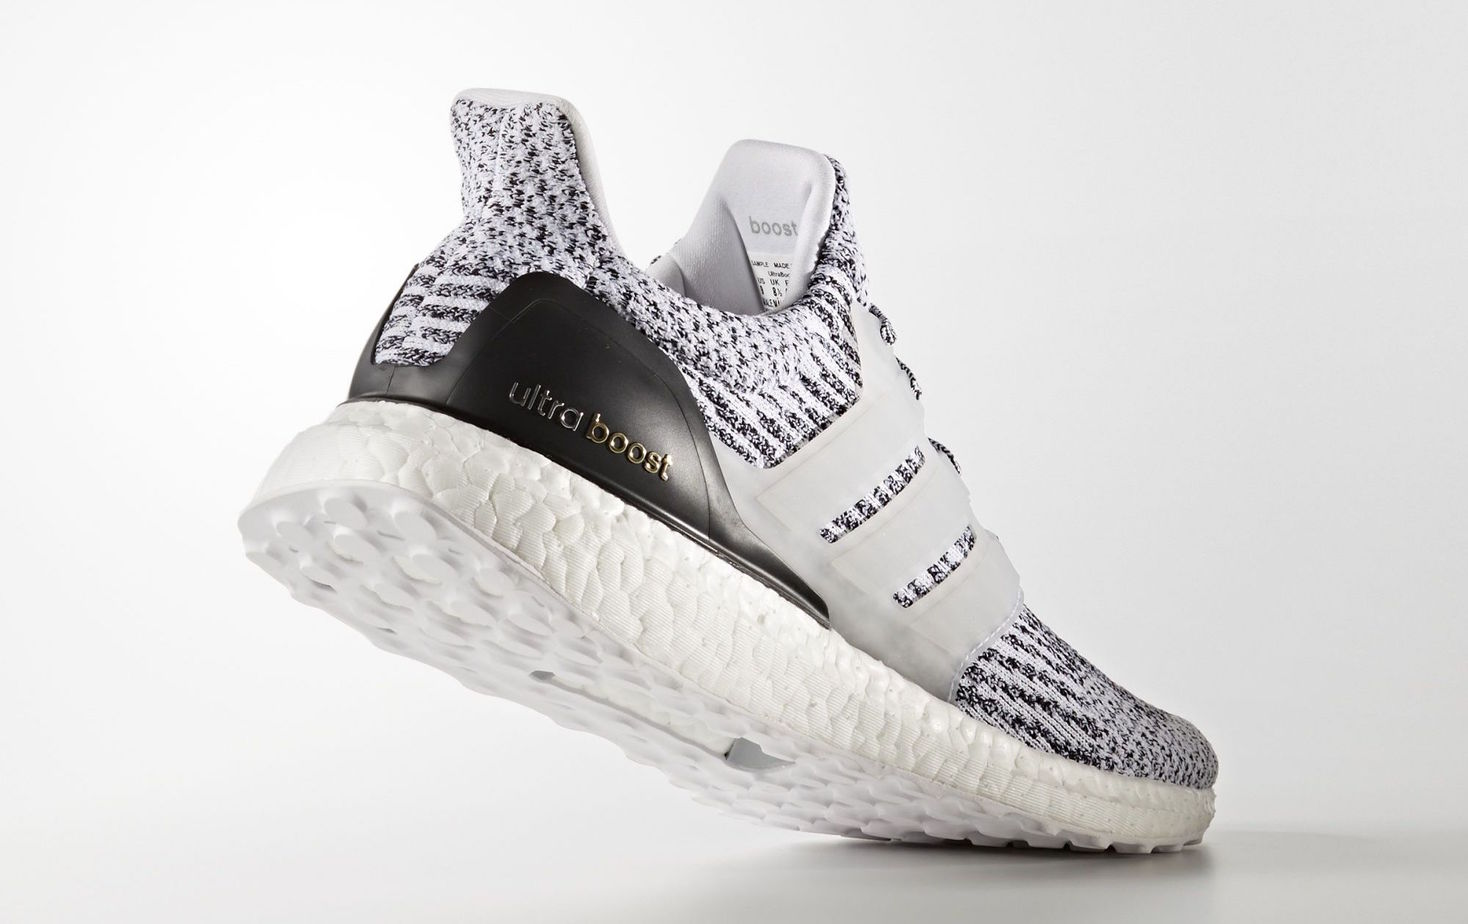 e0b7b12e7 closeout another chance to cop the adidas ultra boost 3.0 zebra tomorrow  108c5 b4a7d